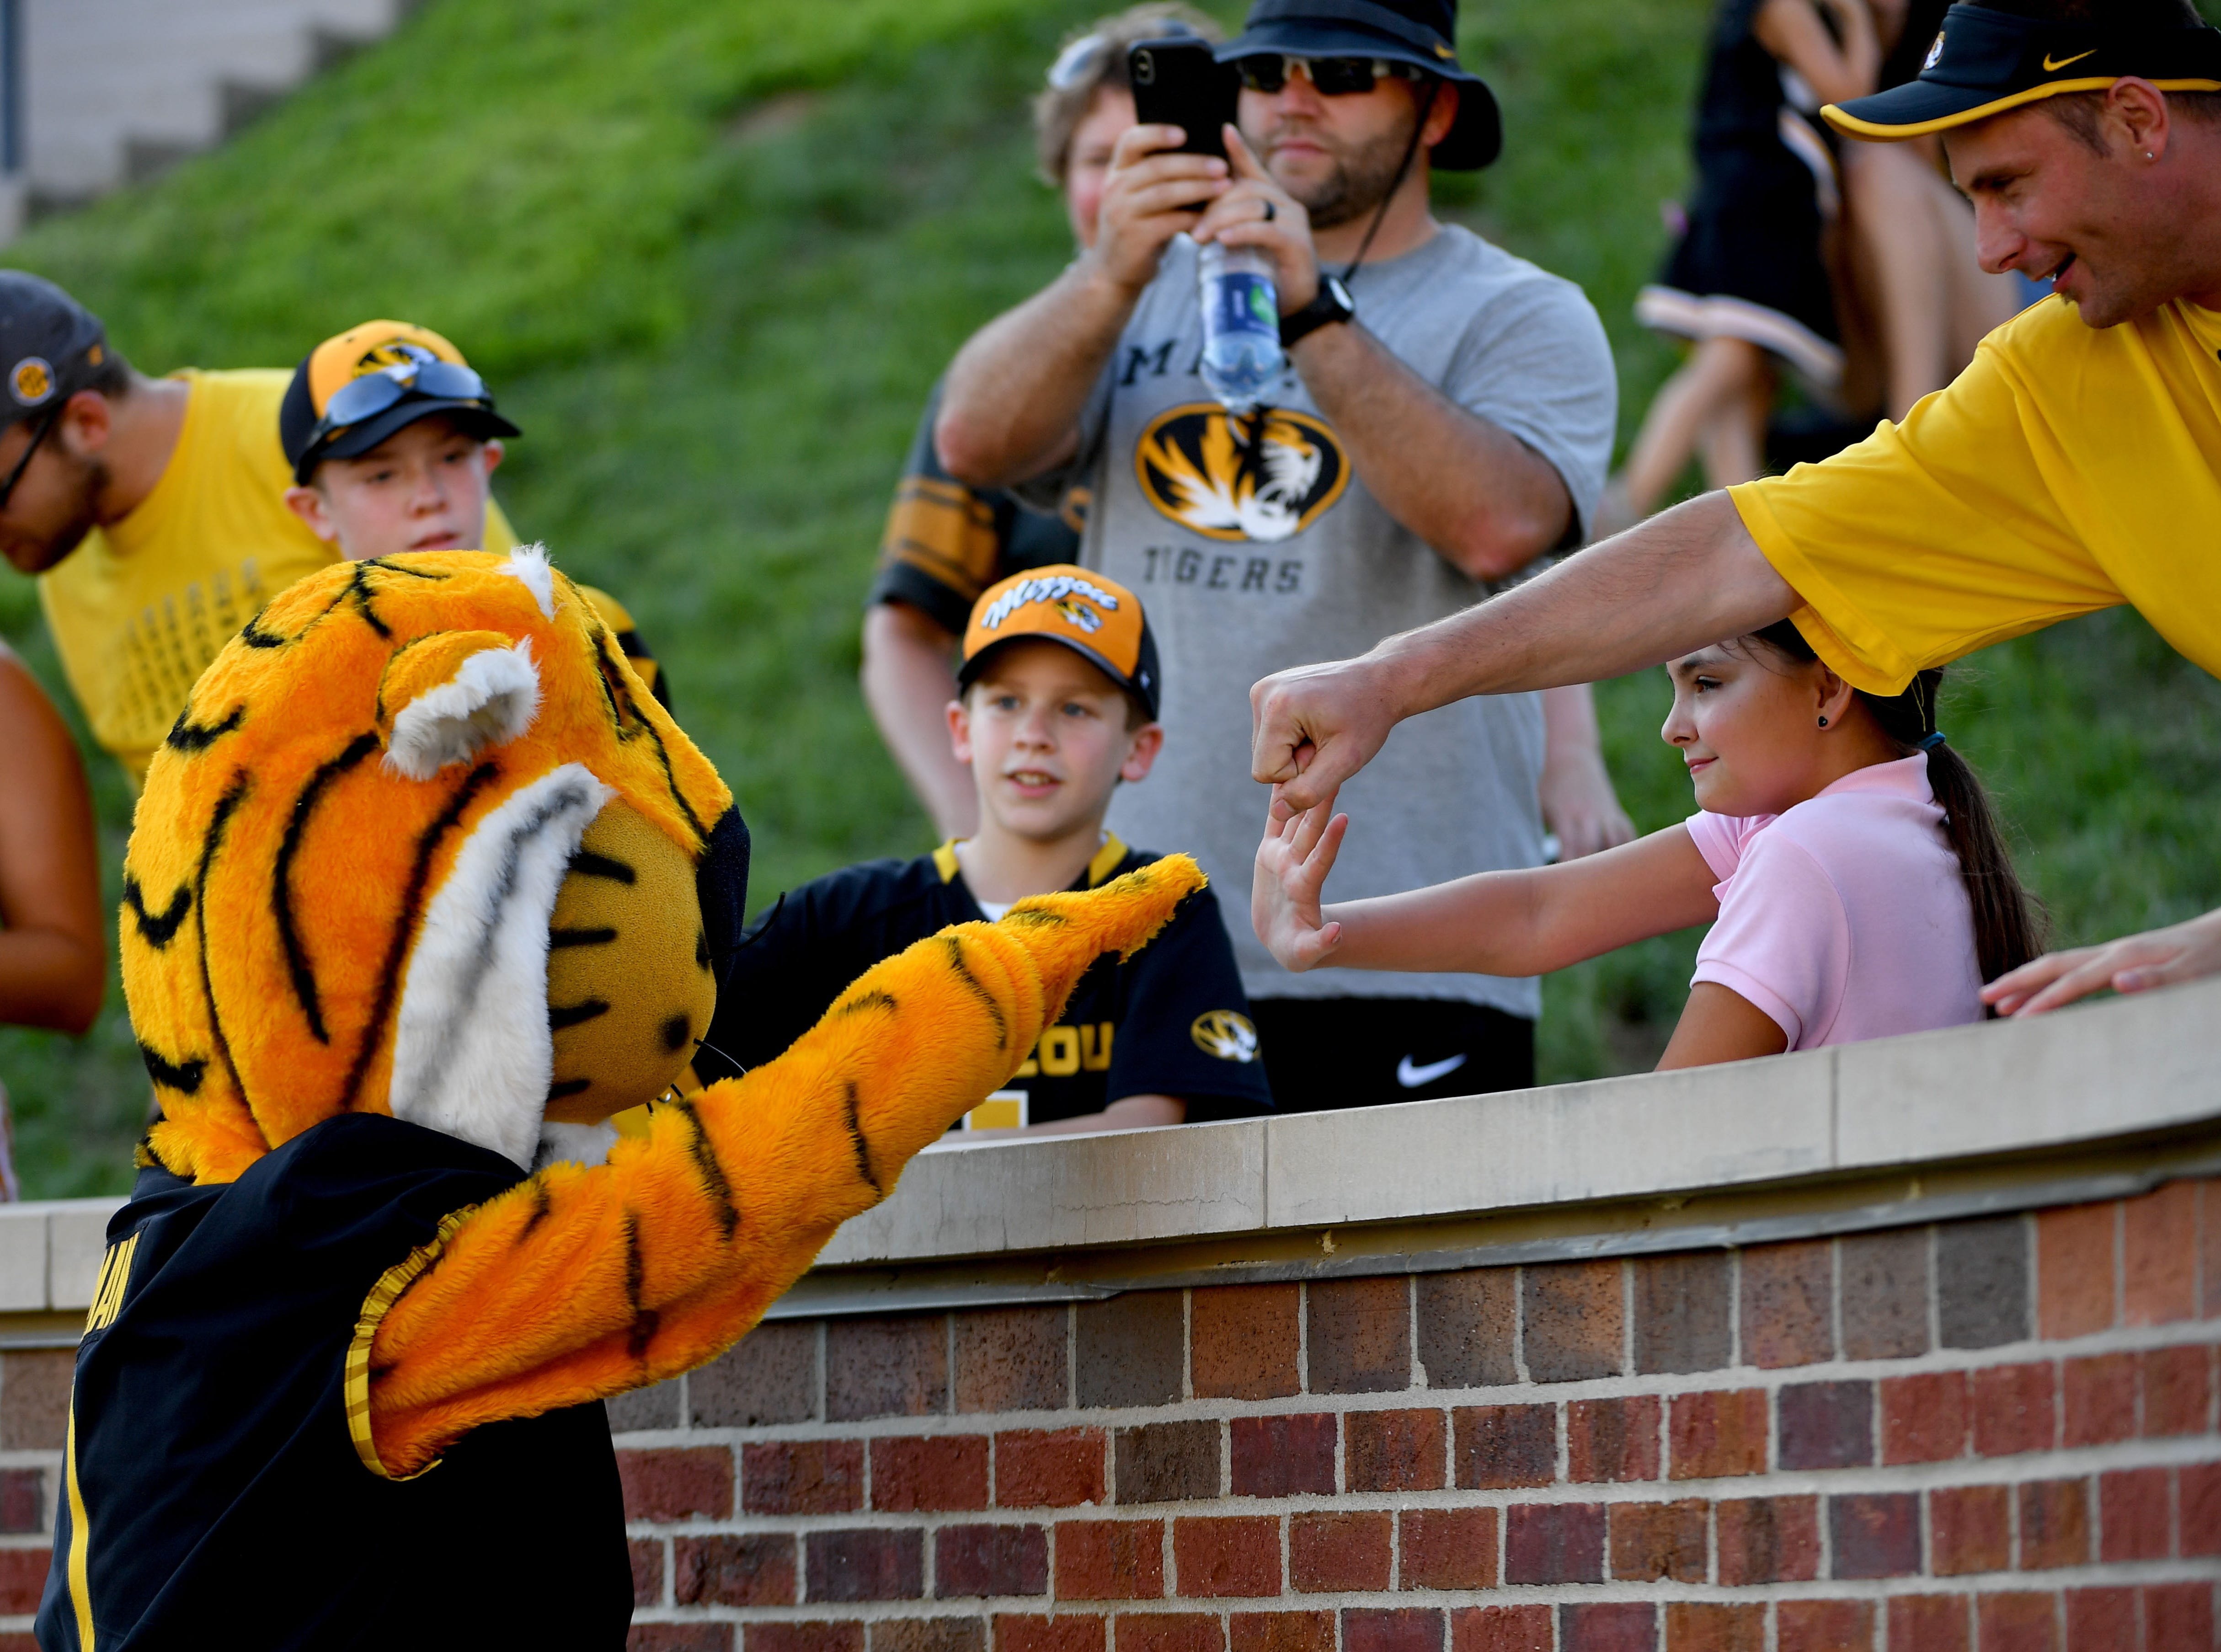 Week 1: Missouri Tigers mascot Truman fist-bumps fans during the second half against the Tennessee Martin Skyhawks.